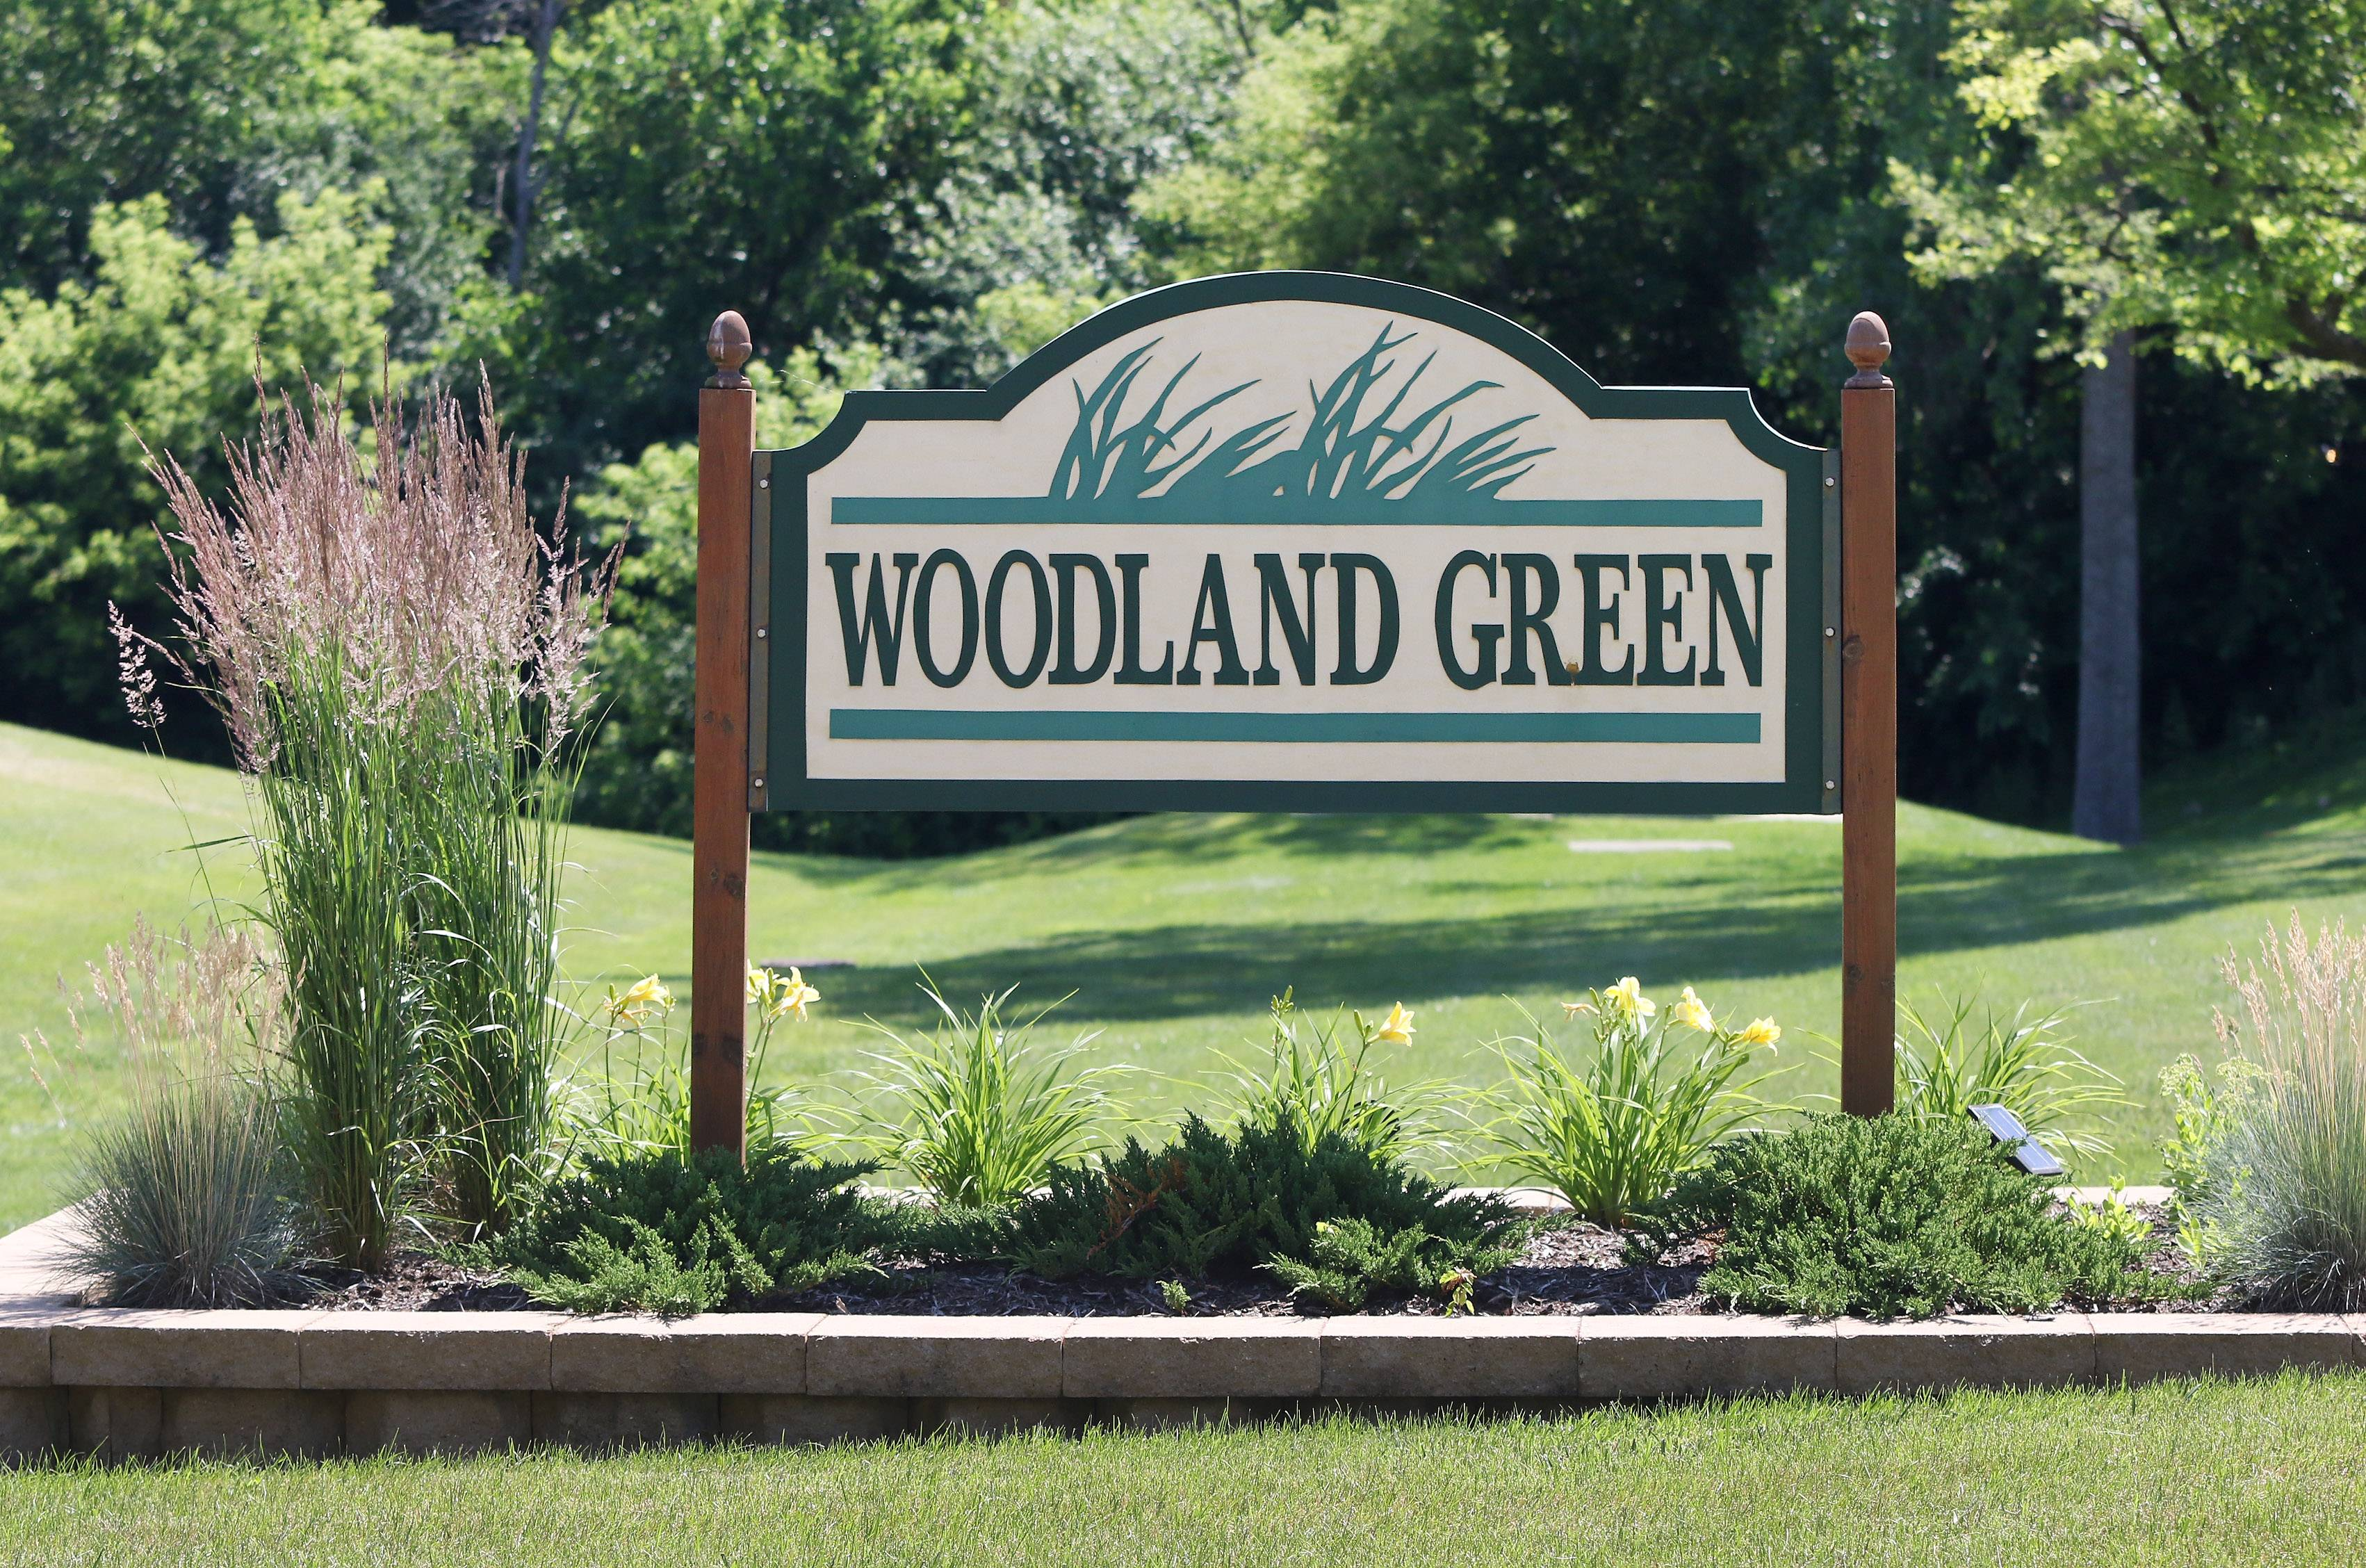 Woodland Green in Fox Lake features 175 attached ranches and two-story townhouses.